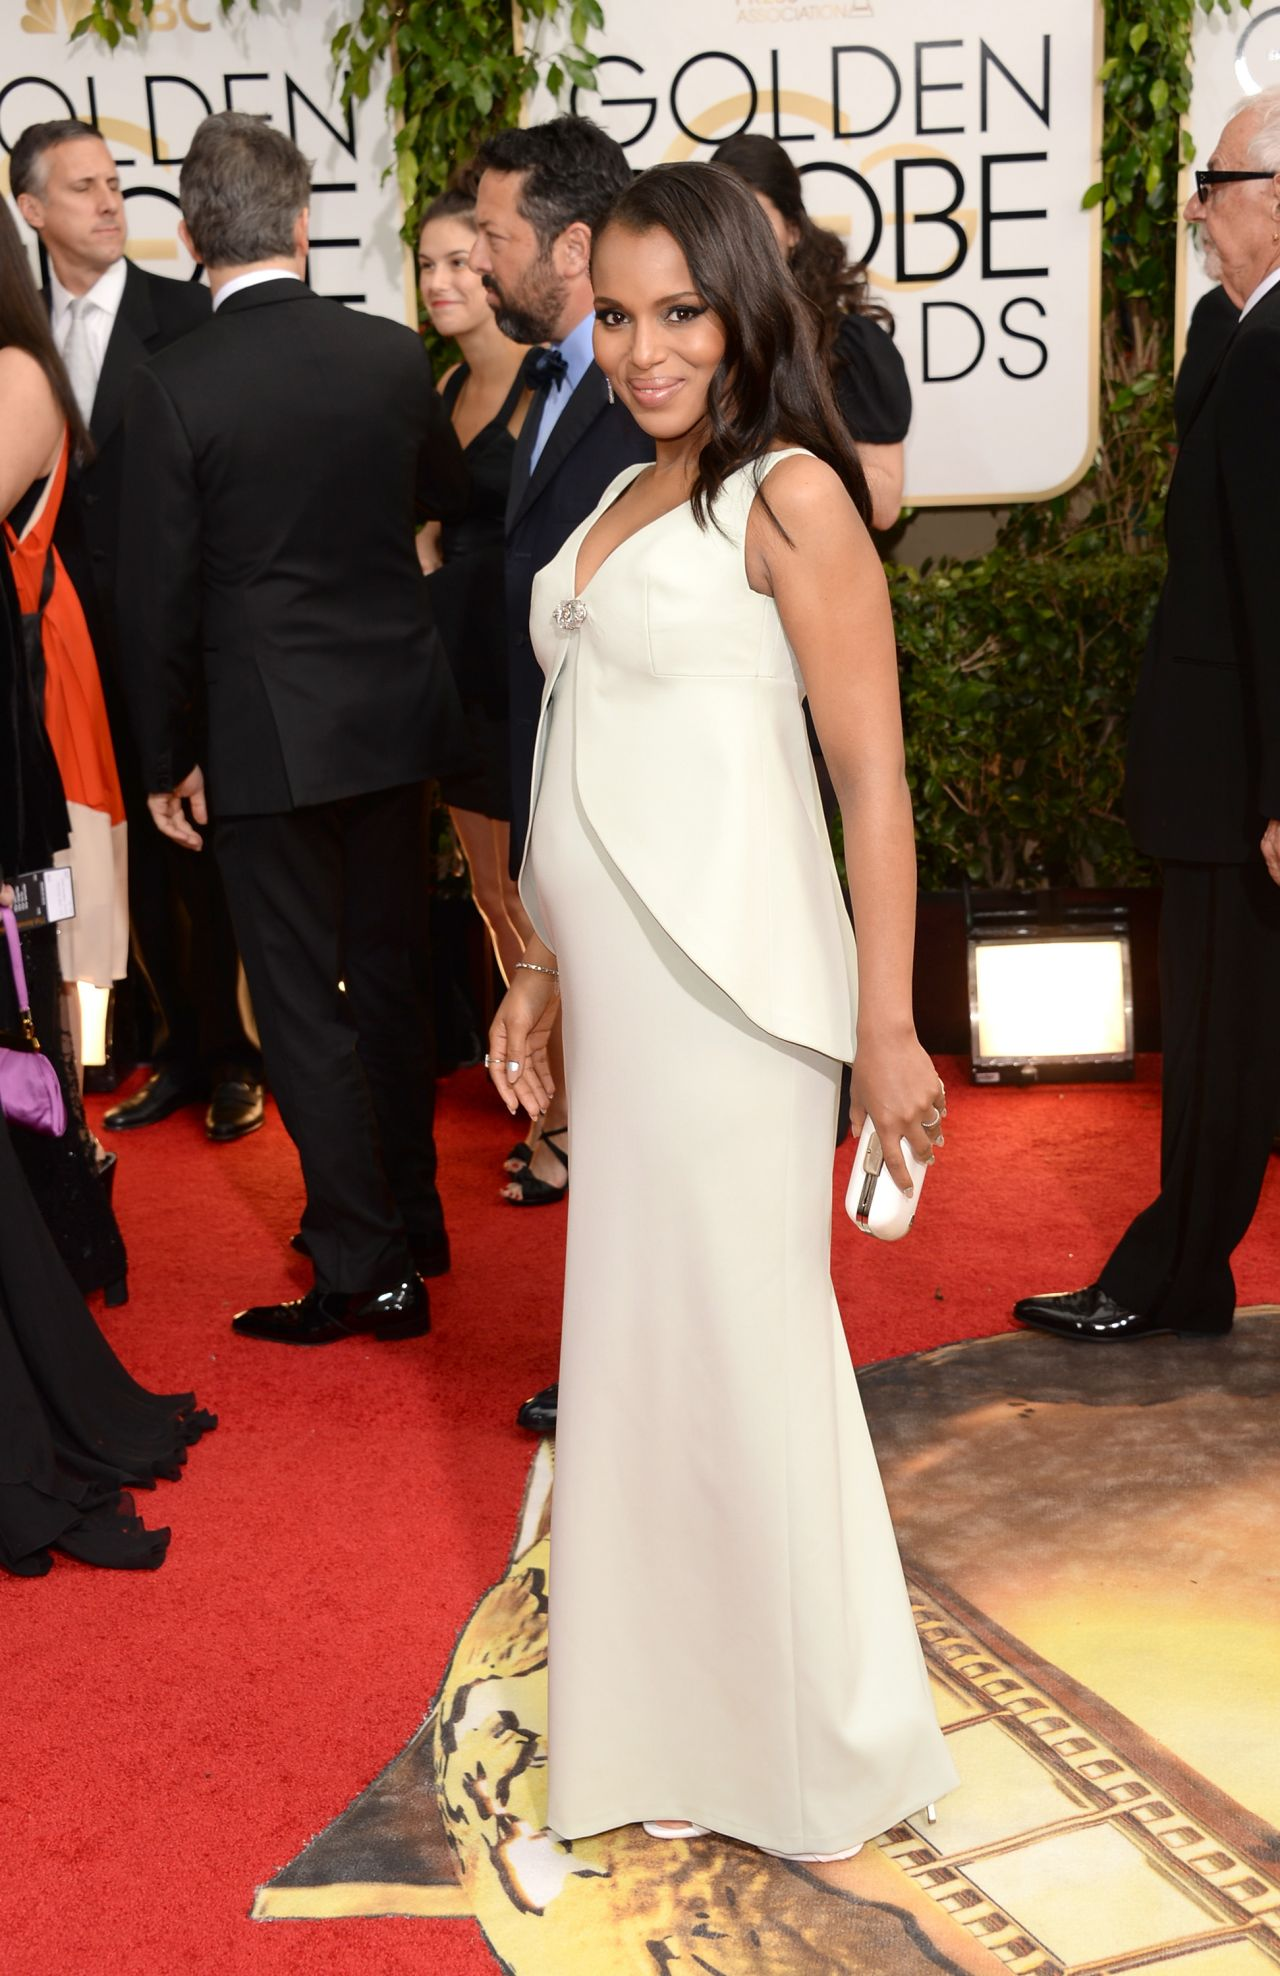 Kerry Washington on Red Carpet - 71st Annual Golden Globe Awards (2014)